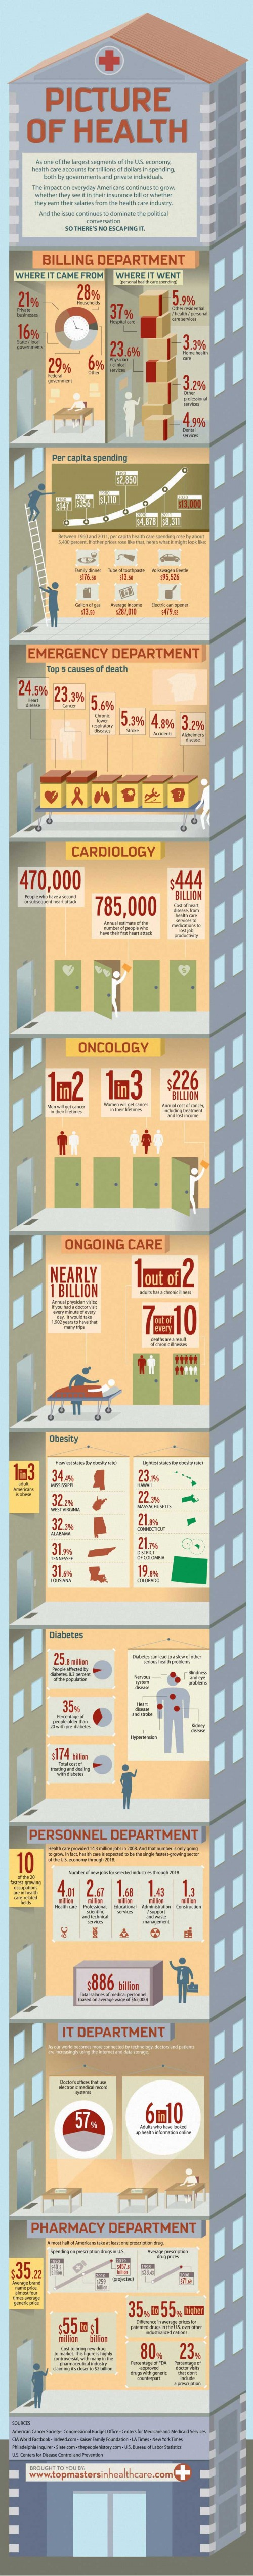 The Skyrocketing Cost of Healthcare infographics